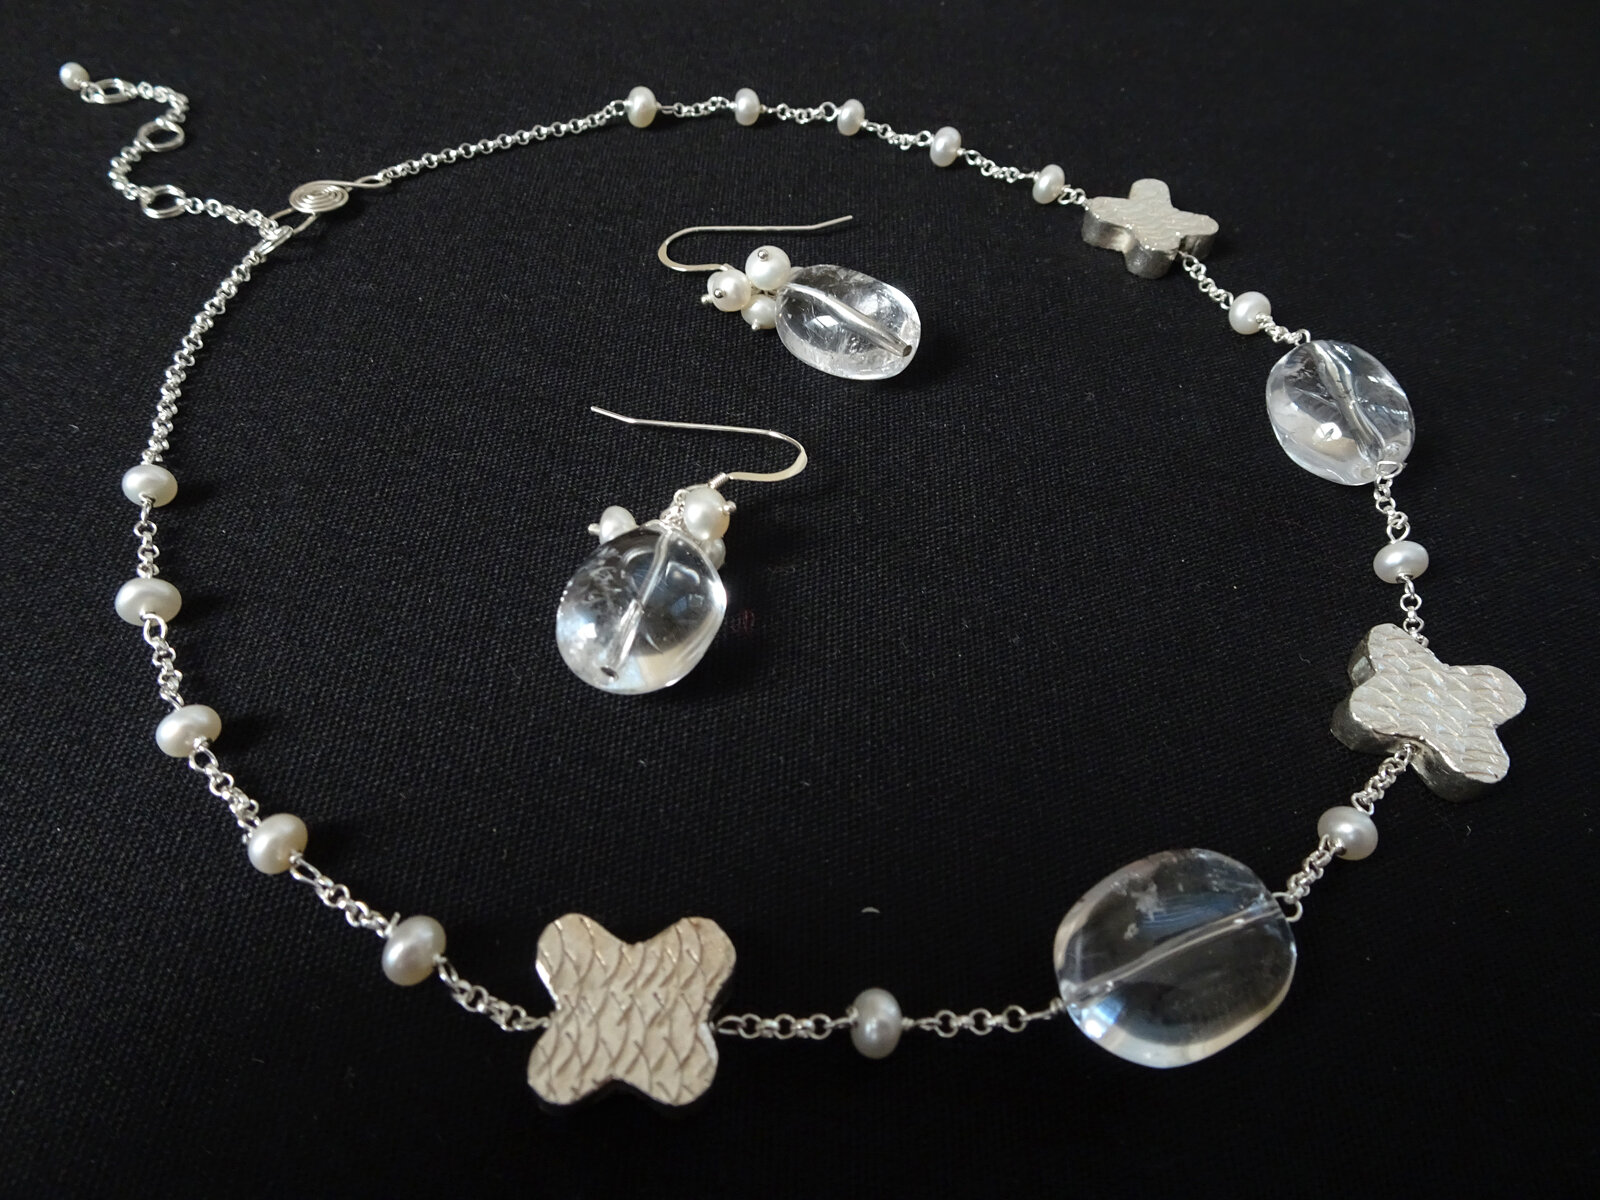 """XOXO in """"Crystal Clear"""" Series 2019  Necklace & Earrings  Pearl, Rock Crystal, Sterling Silver"""